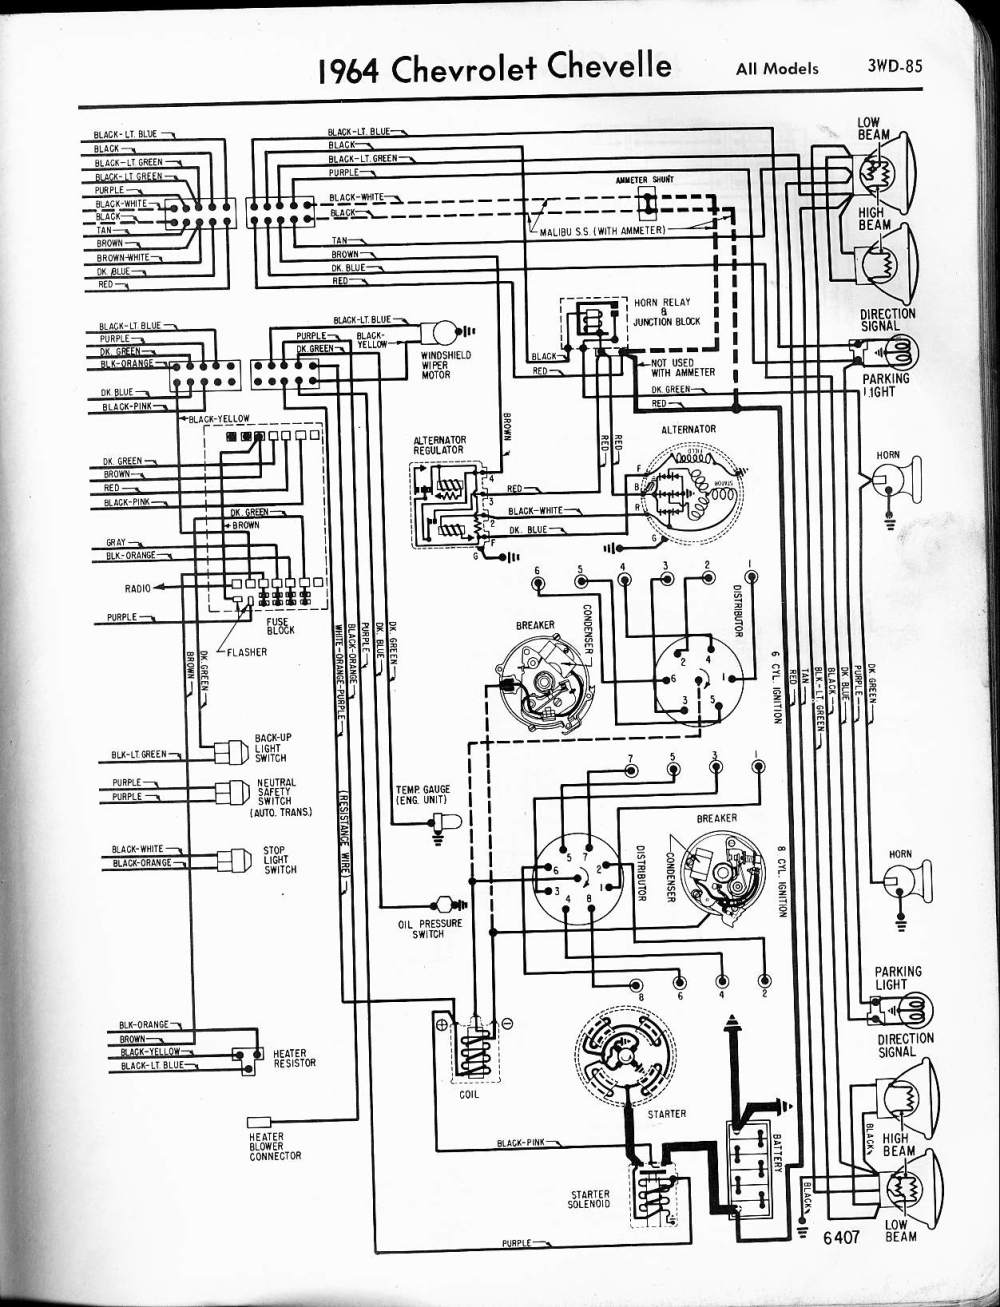 medium resolution of 1970 chevelle wiring diagram in addition for wiring diagrams rh 22 shareplm de 1970 chevelle engine wiring diagram 1970 chevelle radio wiring diagram